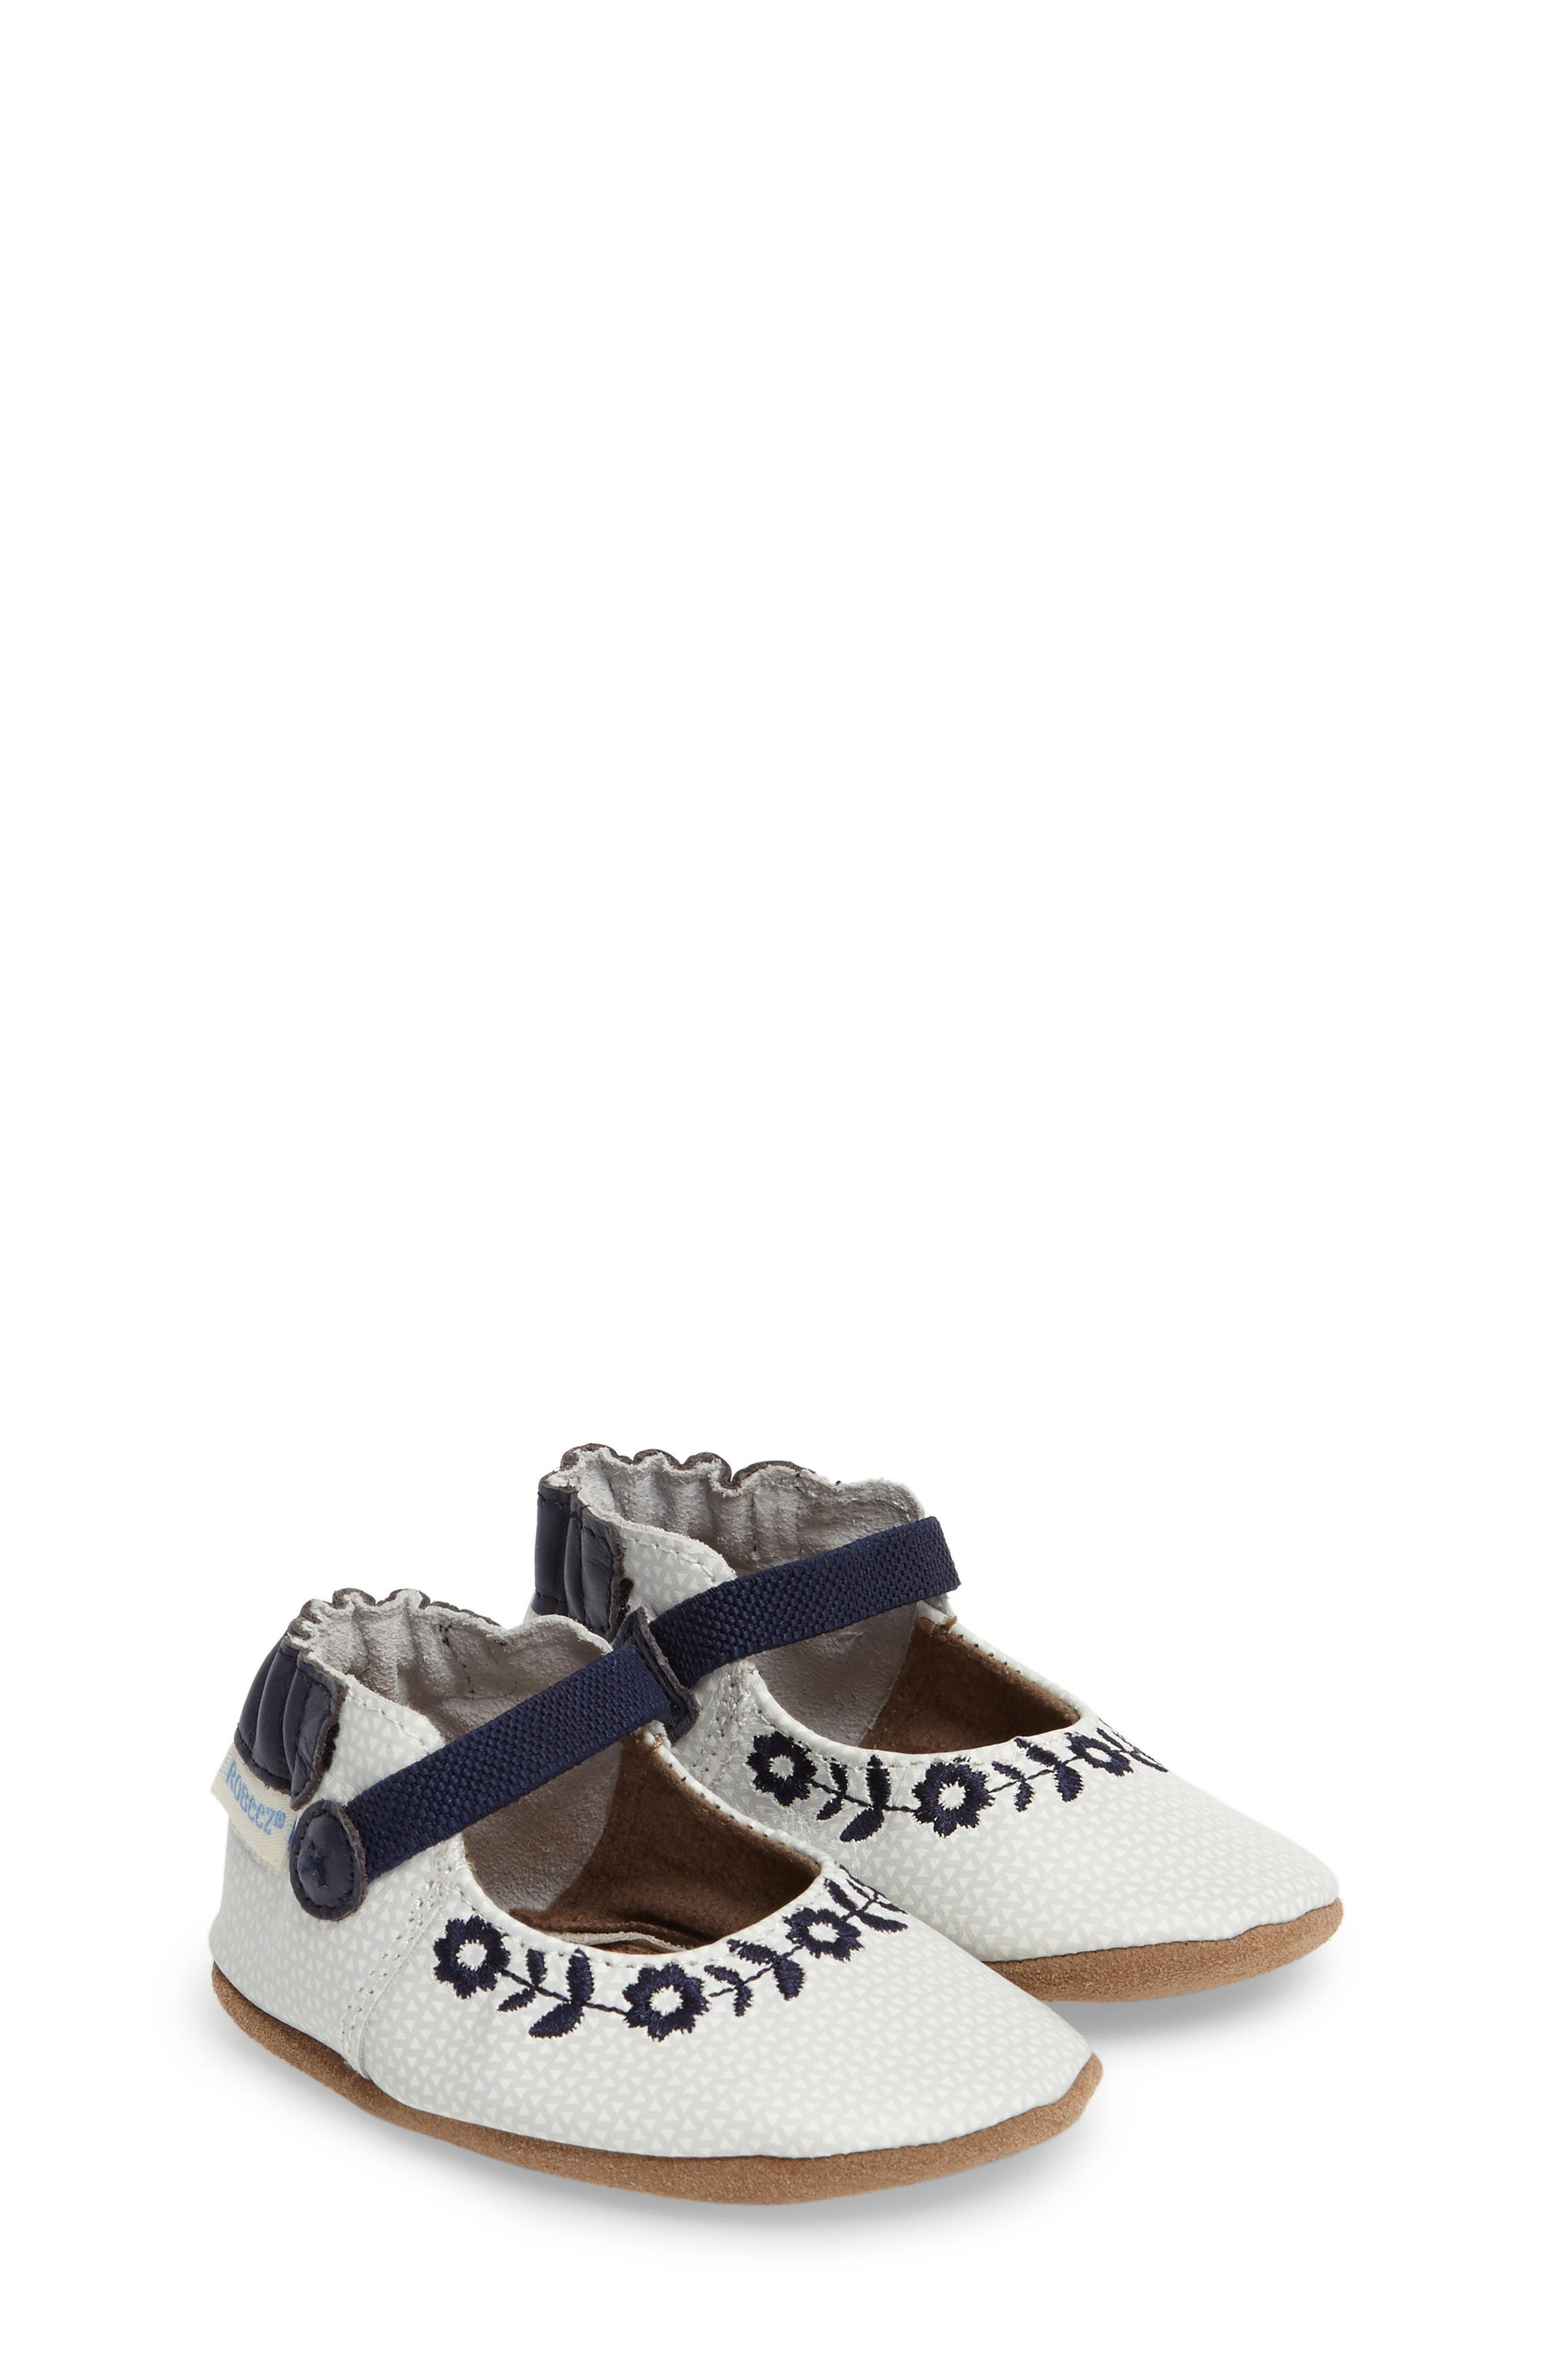 Alternate Image 1 Selected - Robeez® Daisy Lane Embroidered Mary Jane Crib Shoe (Baby & Walker)